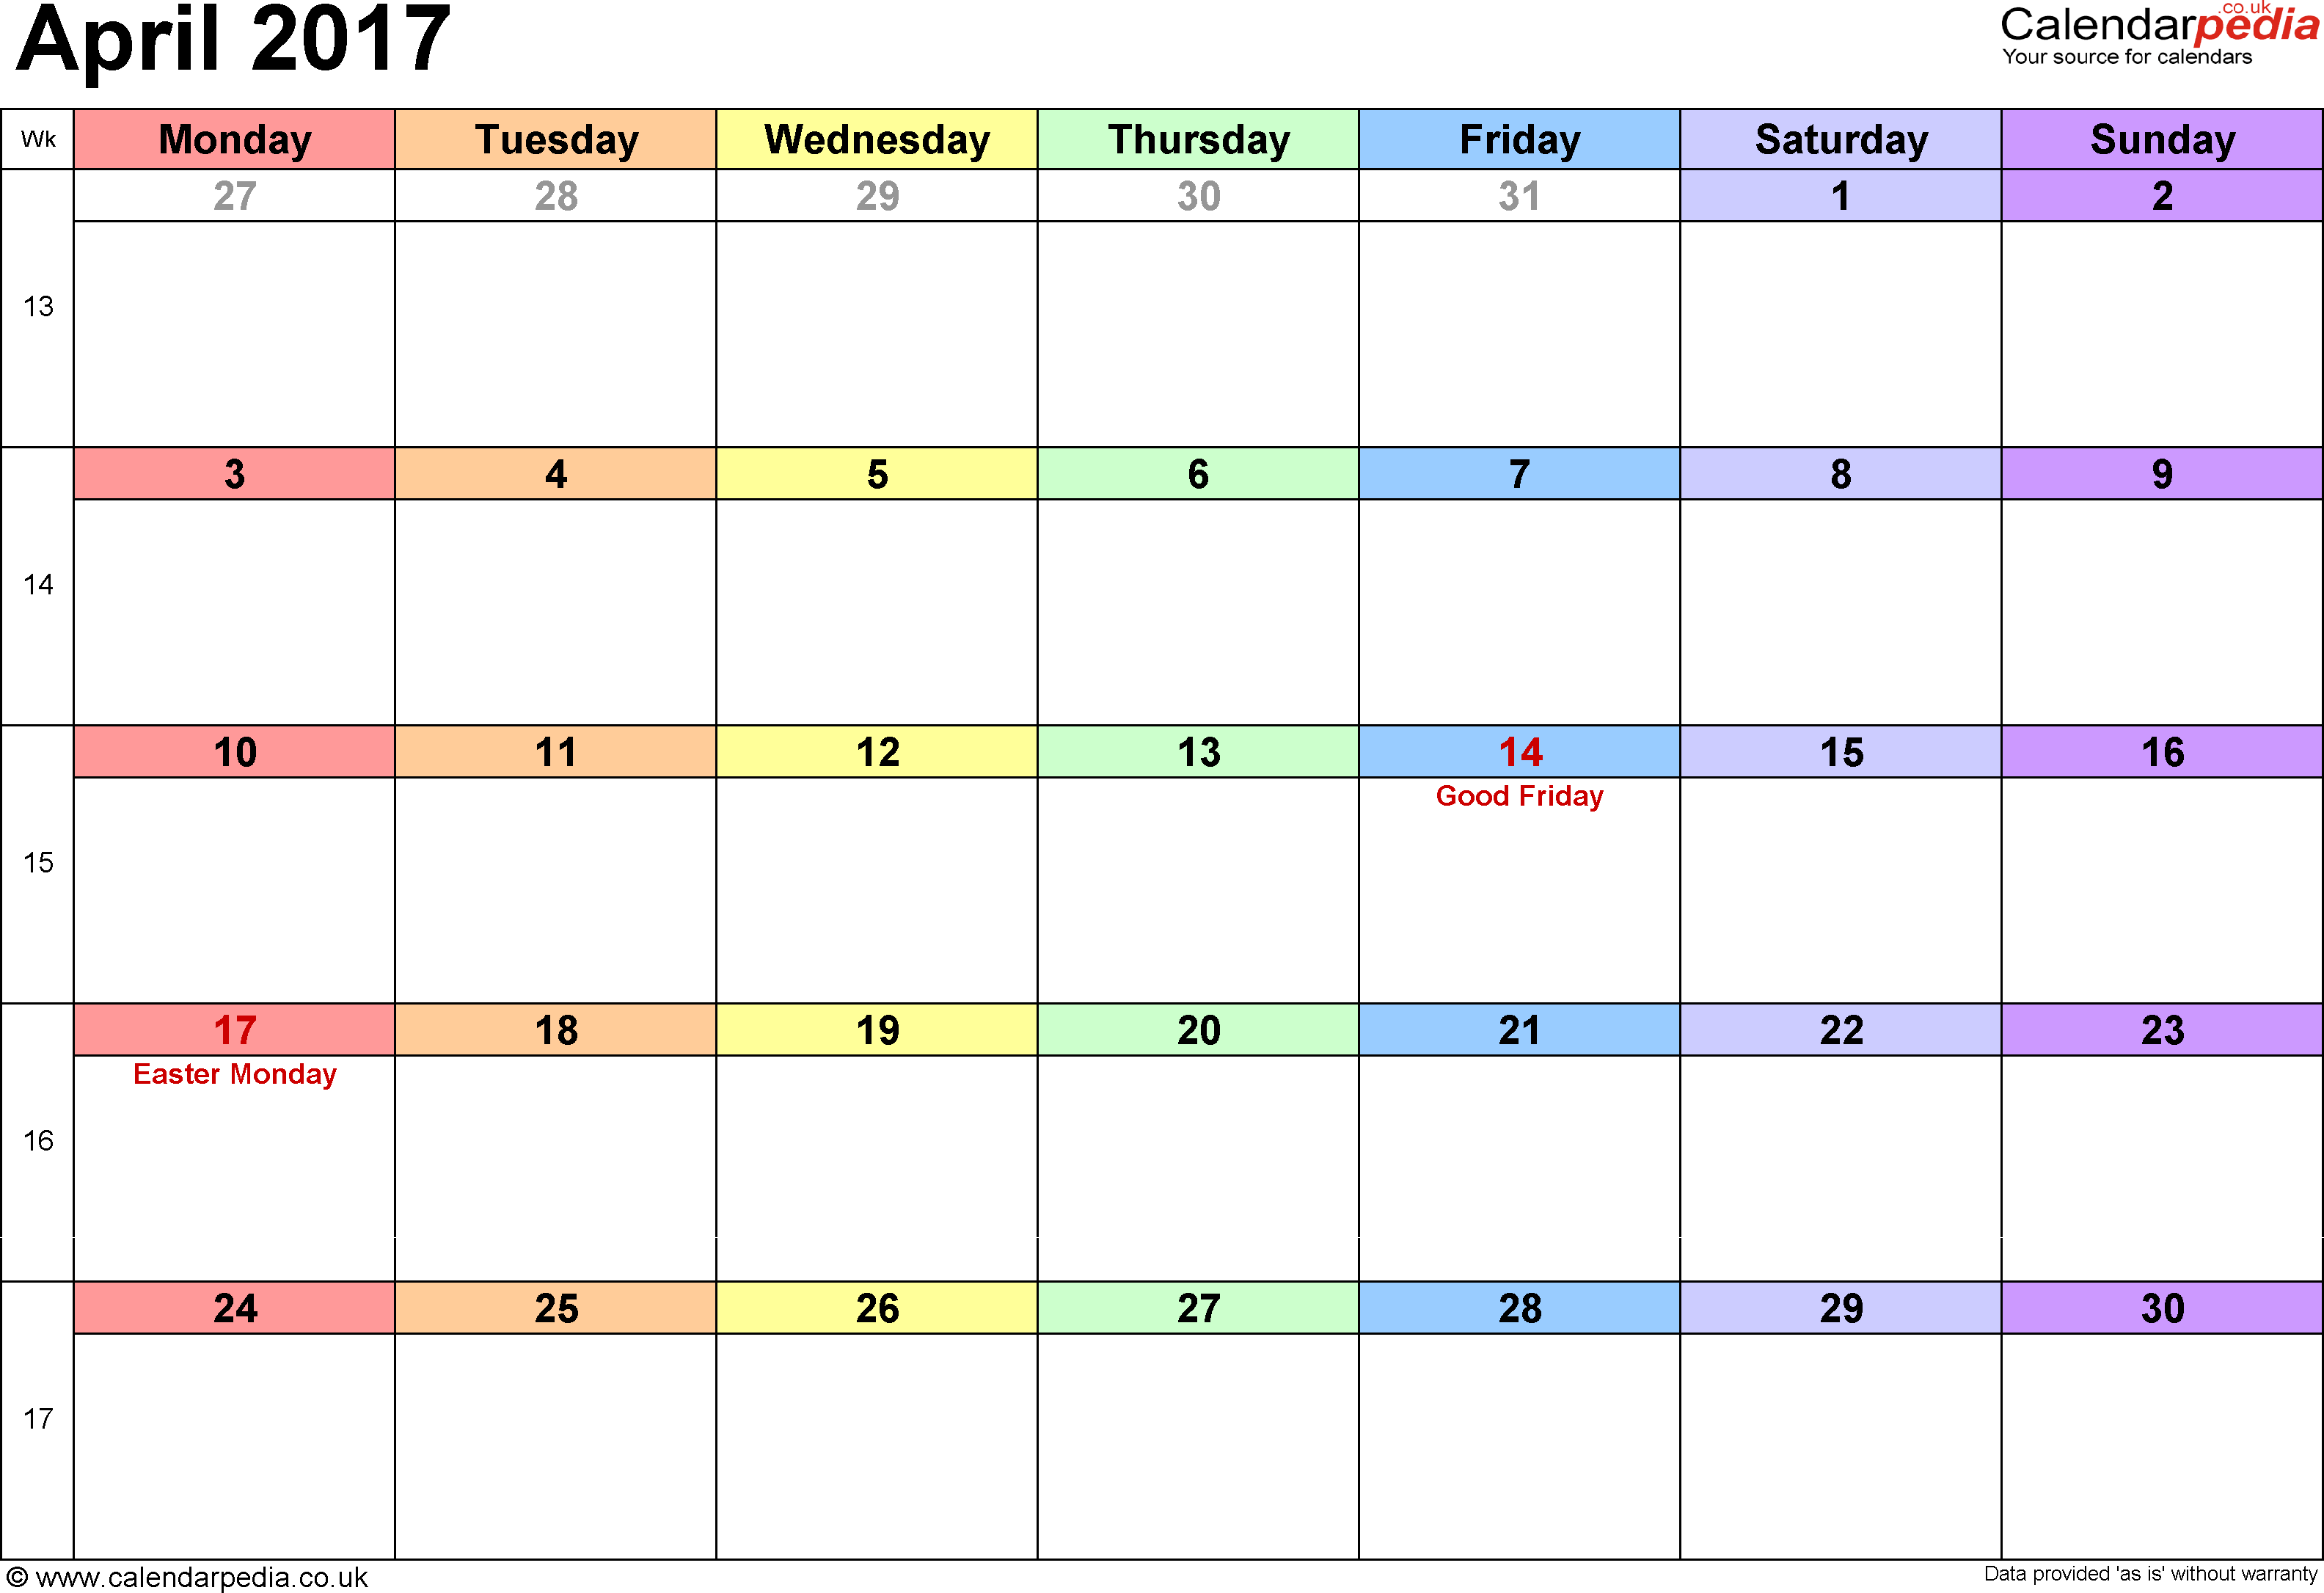 Calendar April 2017, landscape orientation, 1 page, with UK bank holidays and week numbers